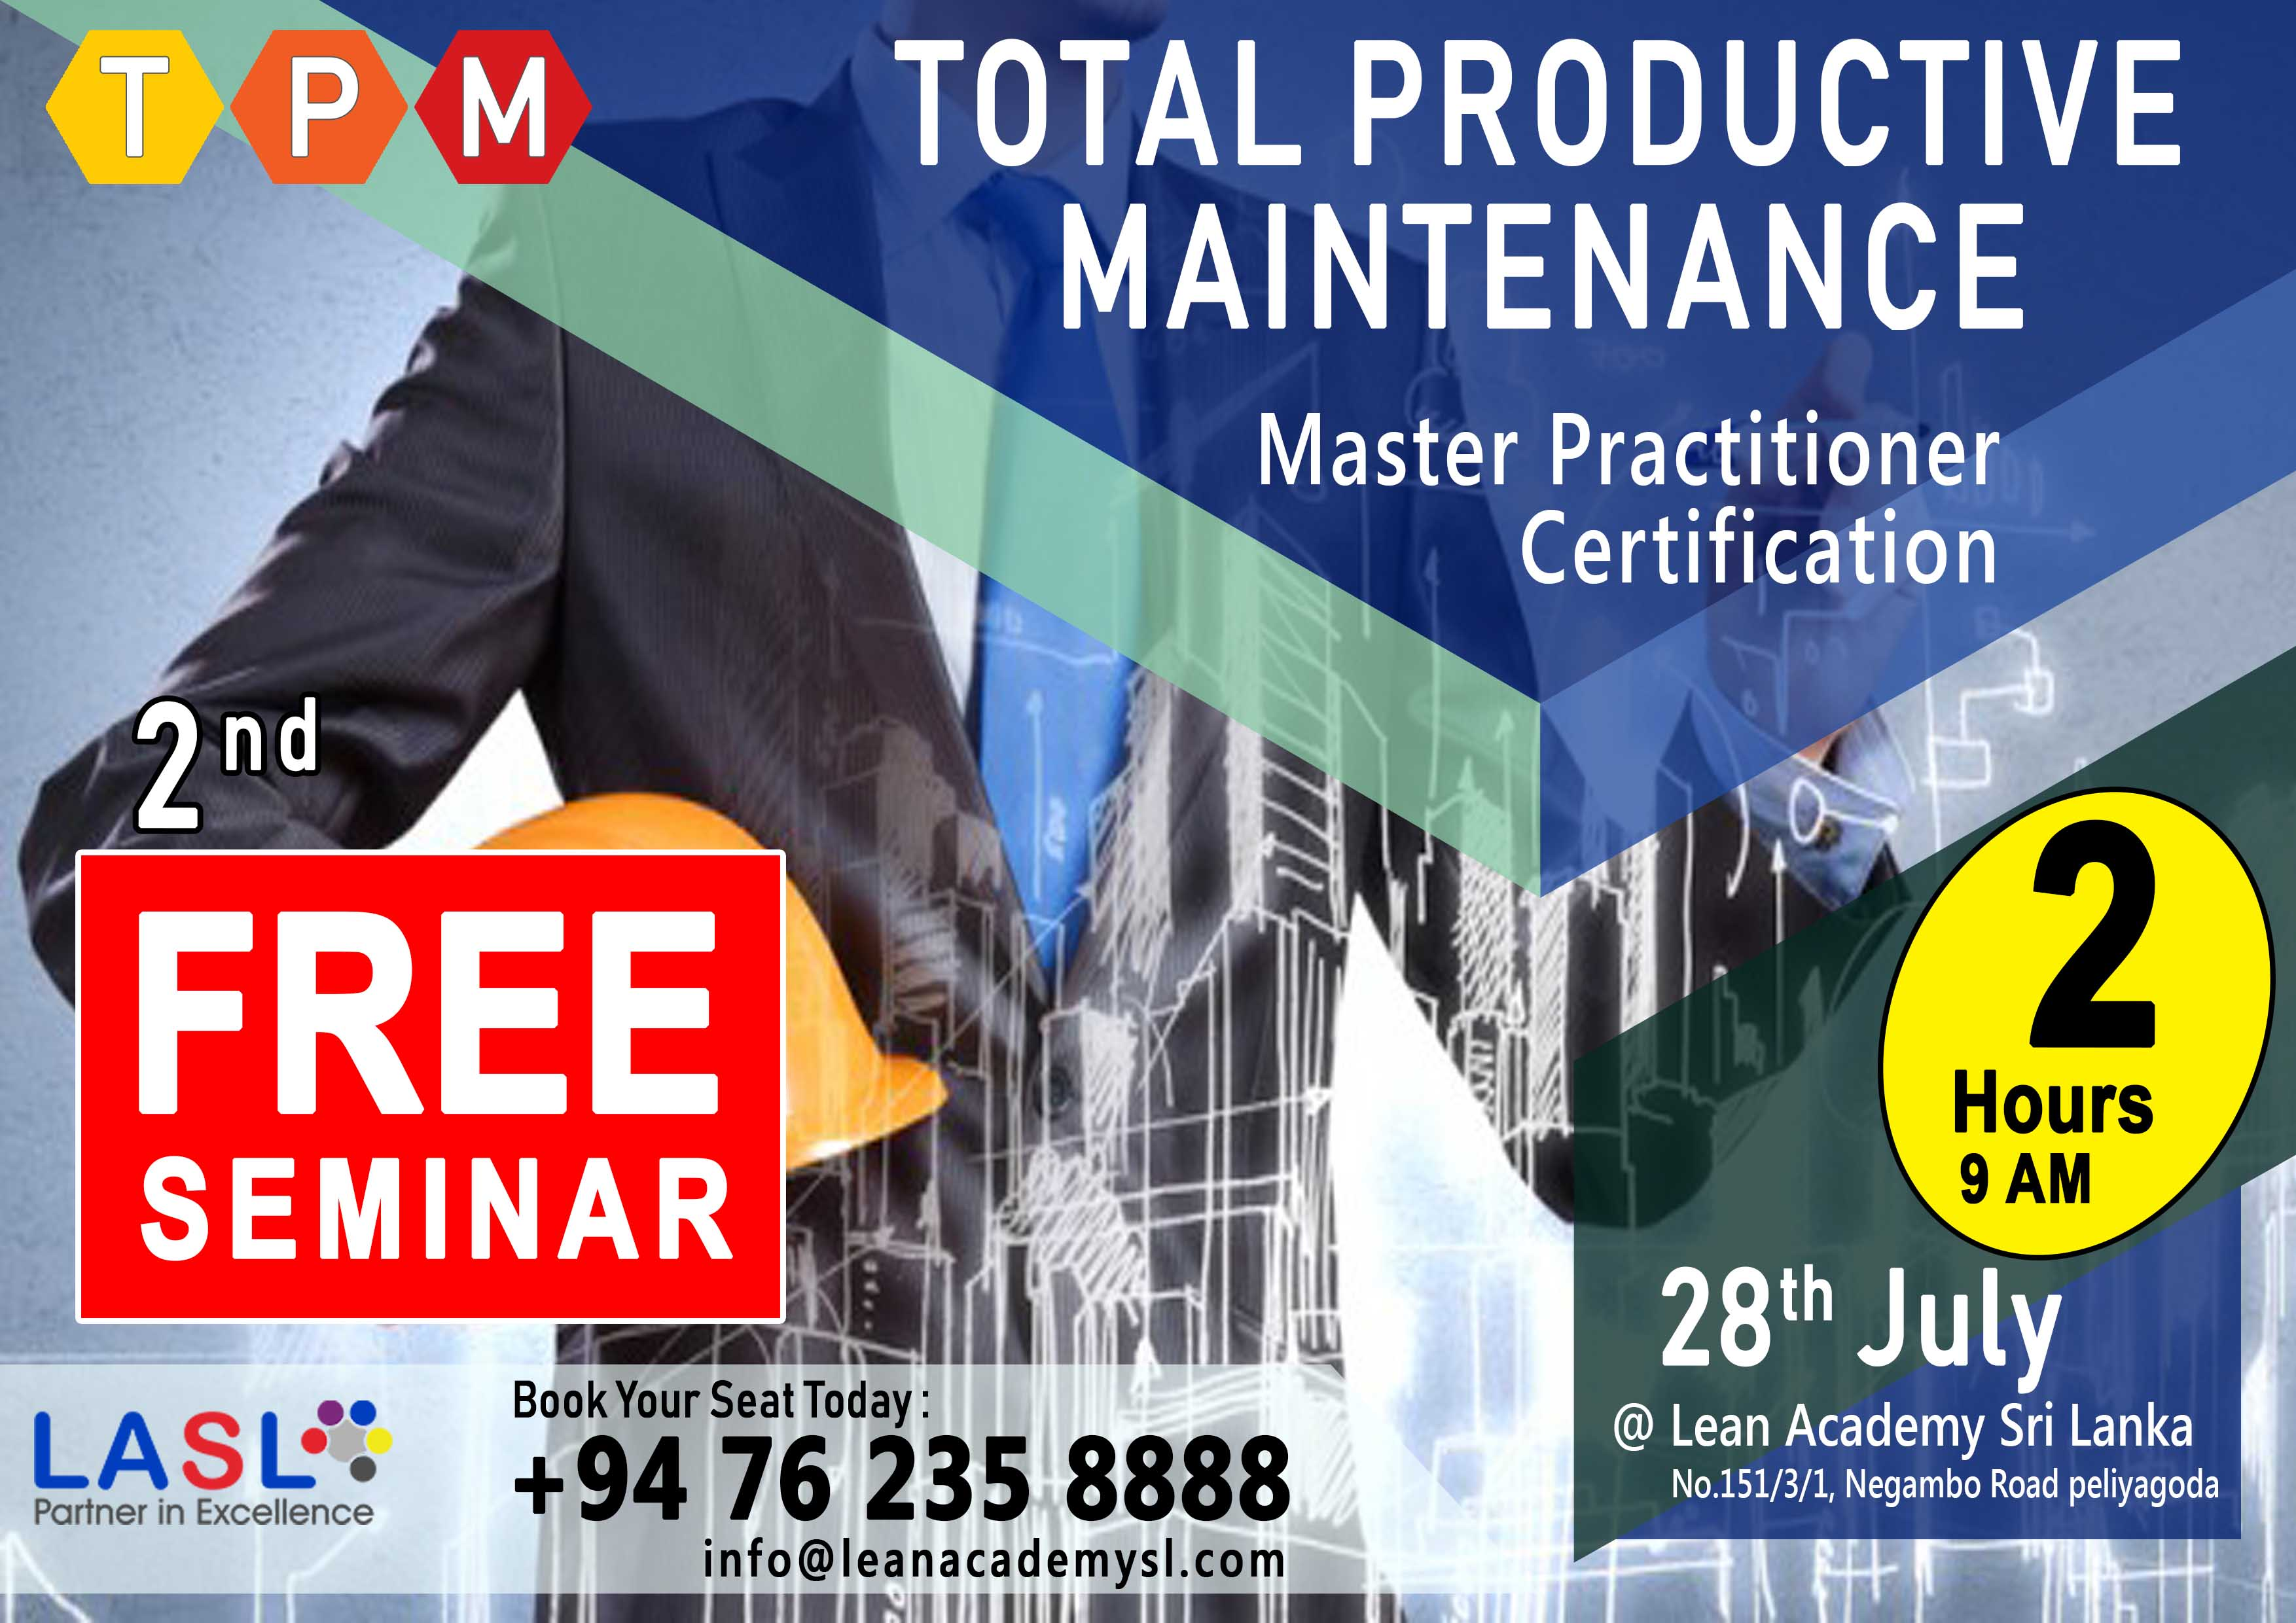 2nd Free Seminar for TPM Master Practitioner Certificate